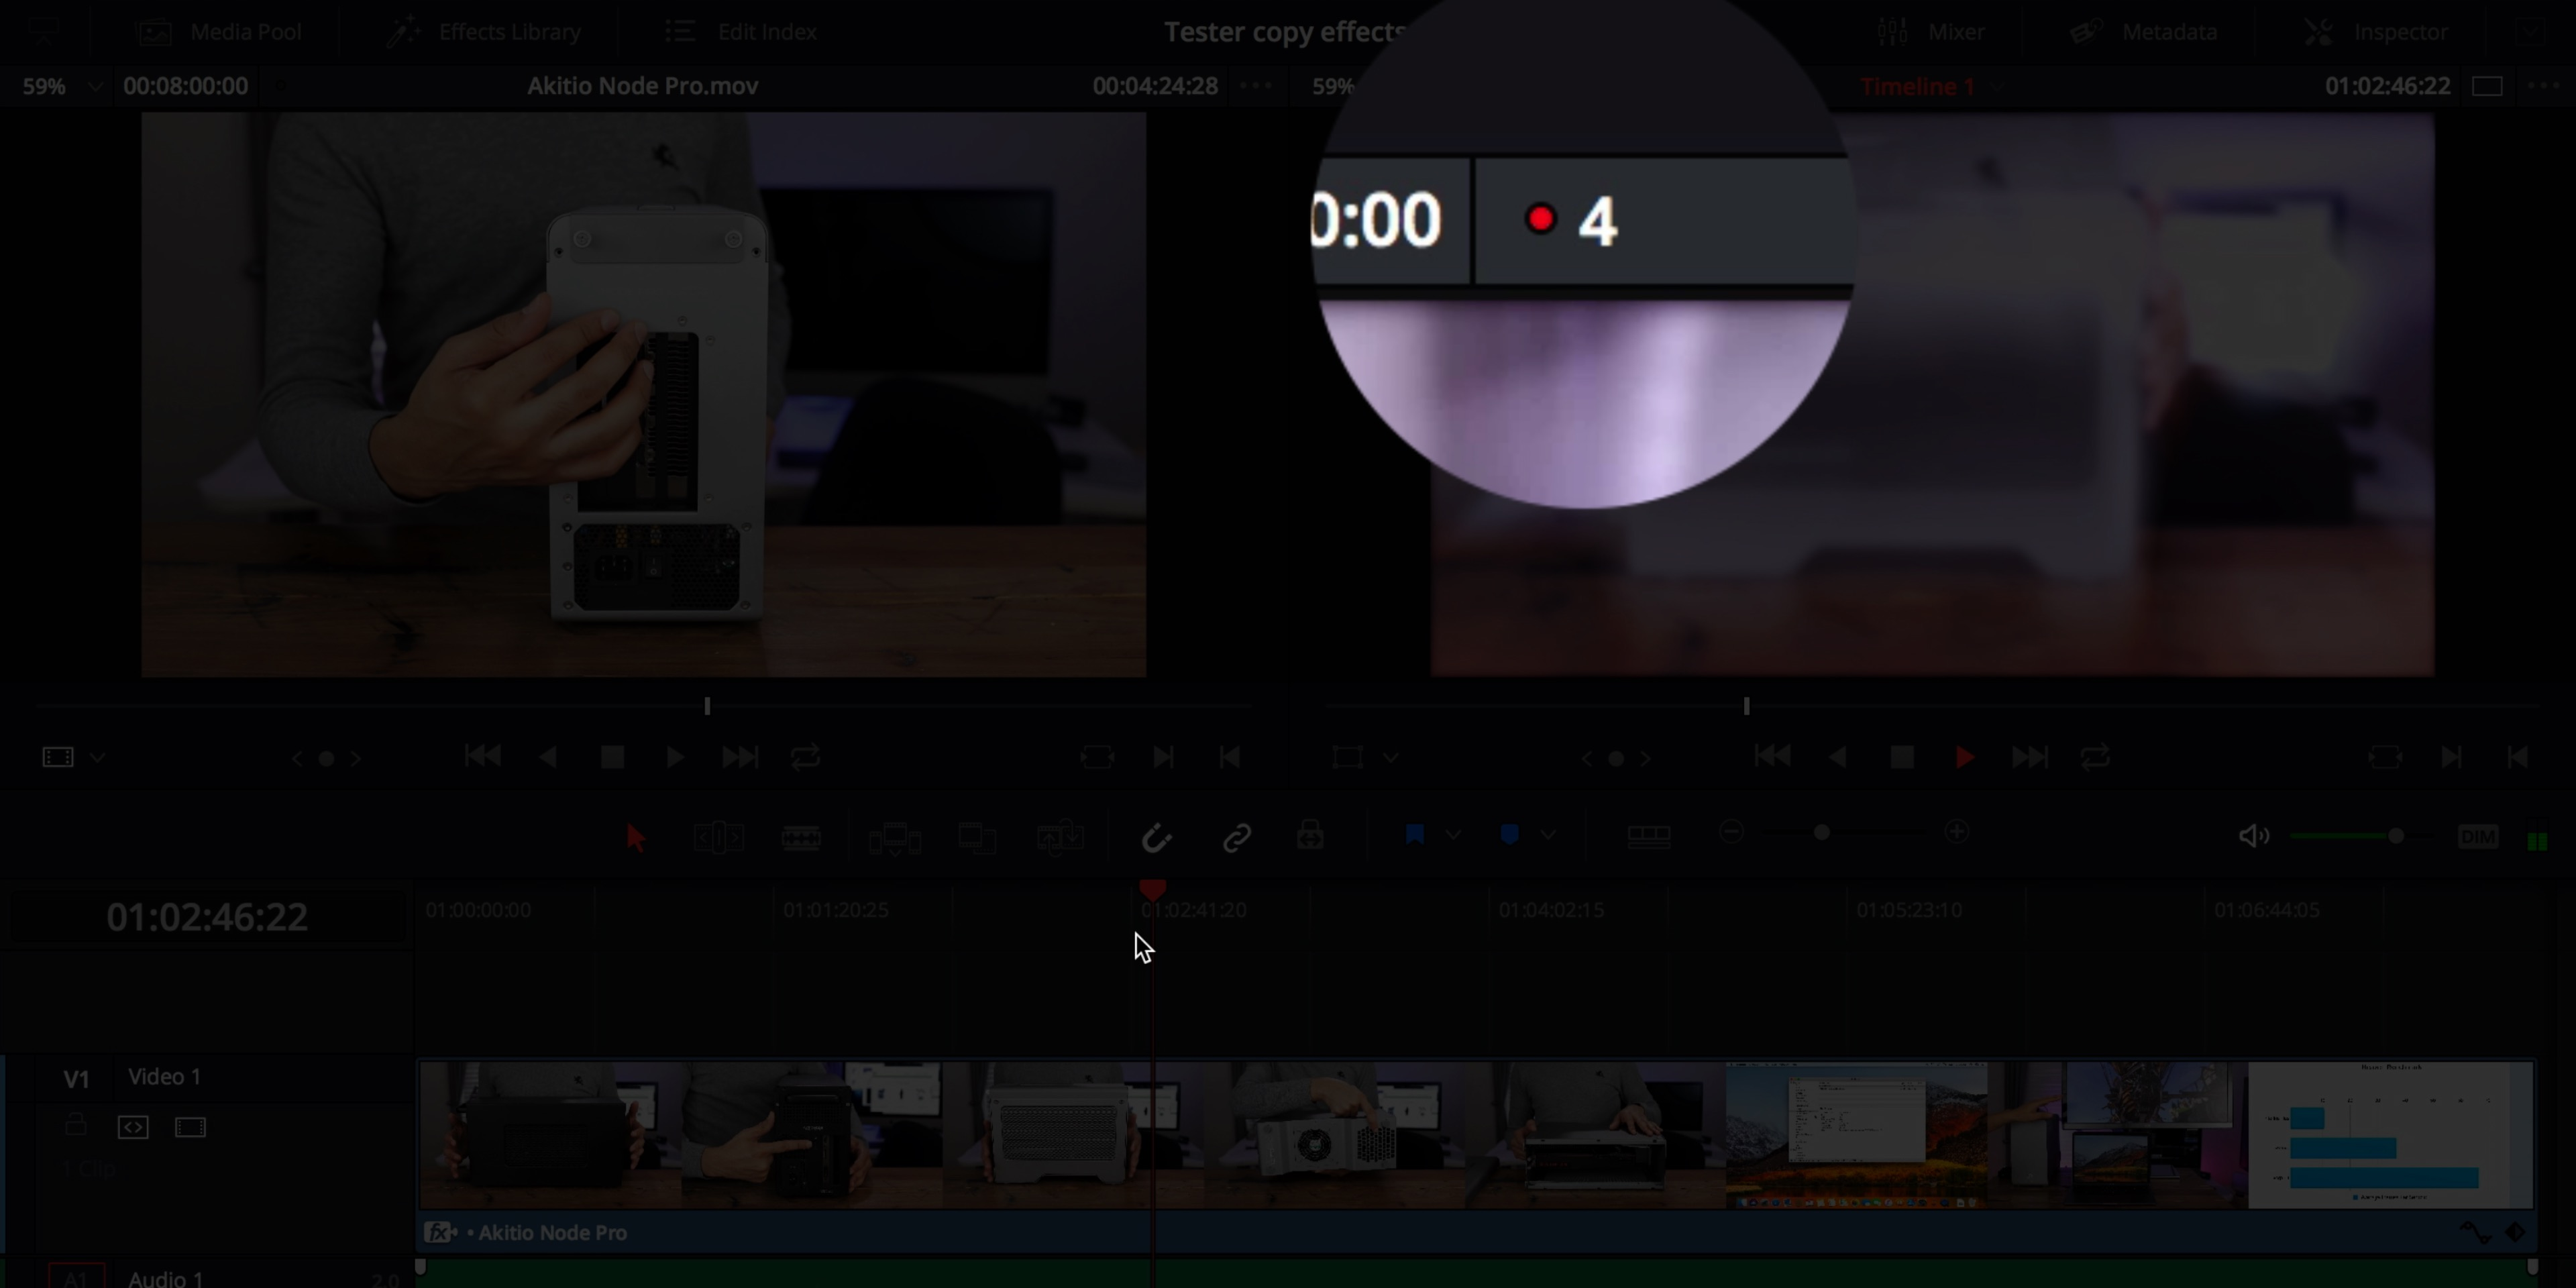 Hands-on: DaVinci Resolve's eGPU-accelerated timeline performance